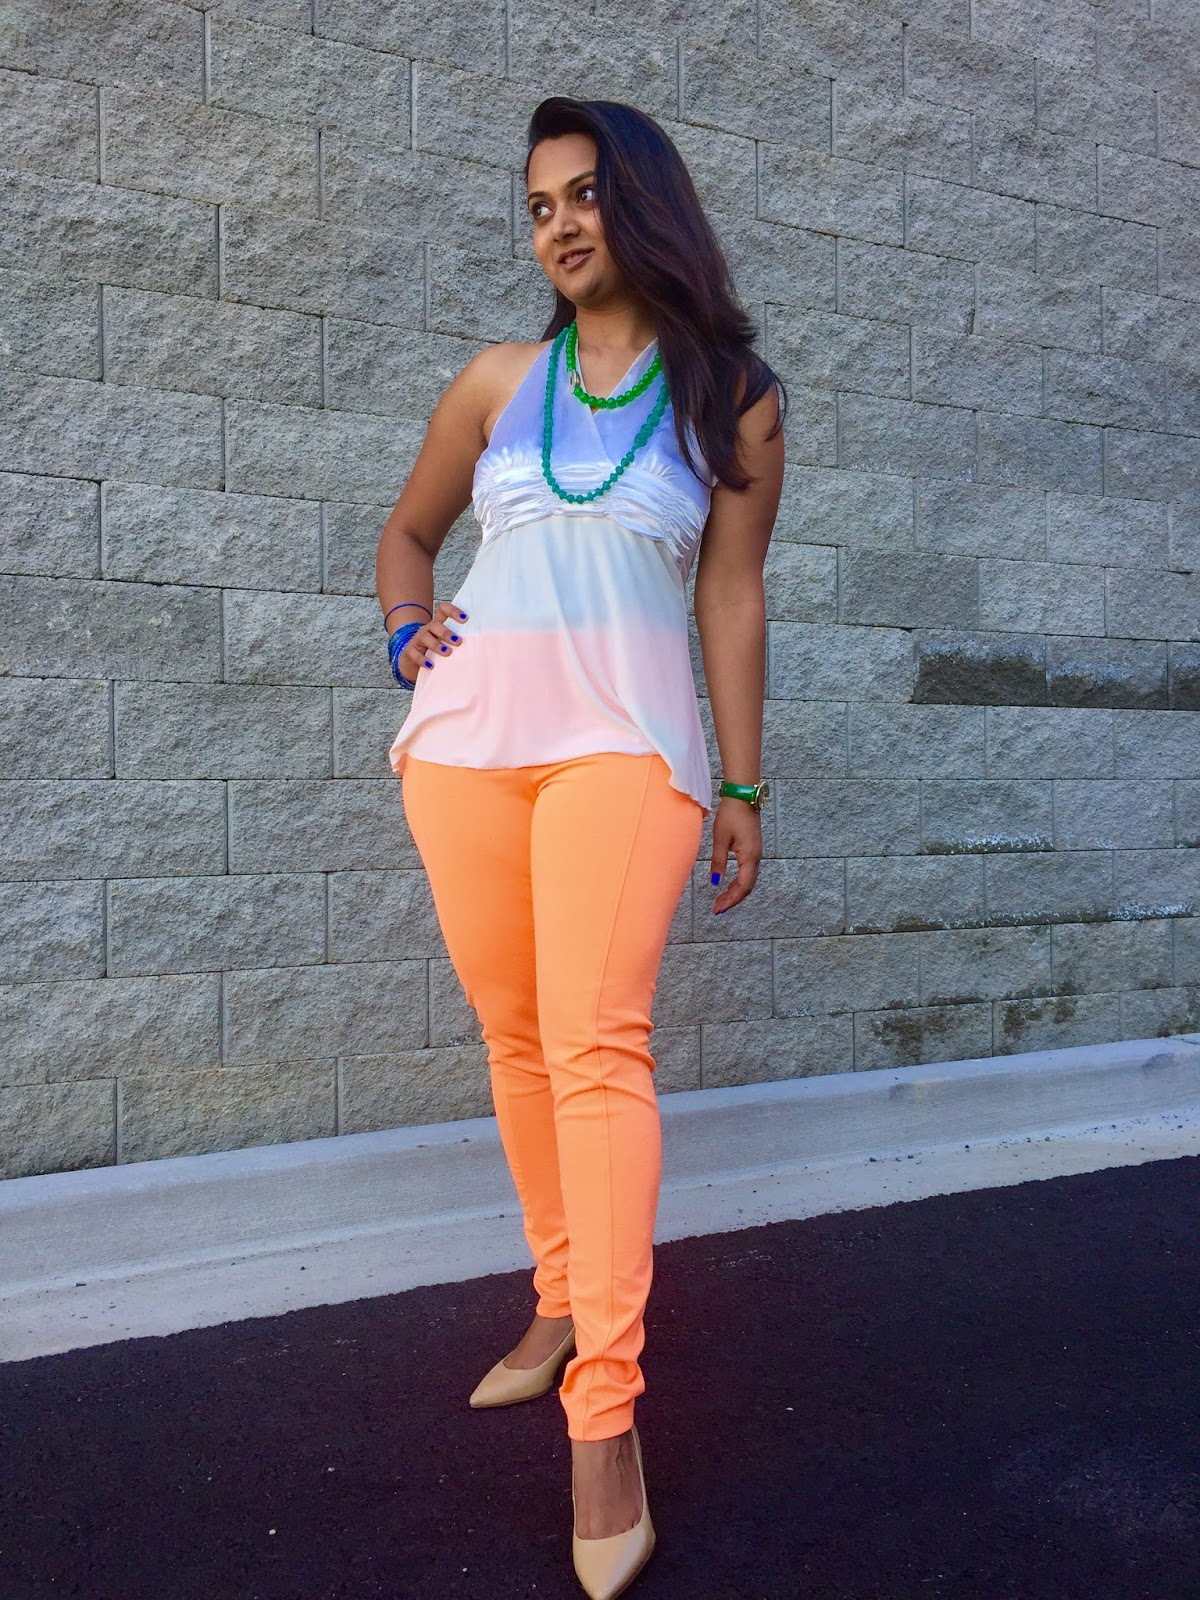 dressing up for Indian Independence day, Tricolor outfit ideas, orange, green and white combination outfit, Ananya in Tricolor